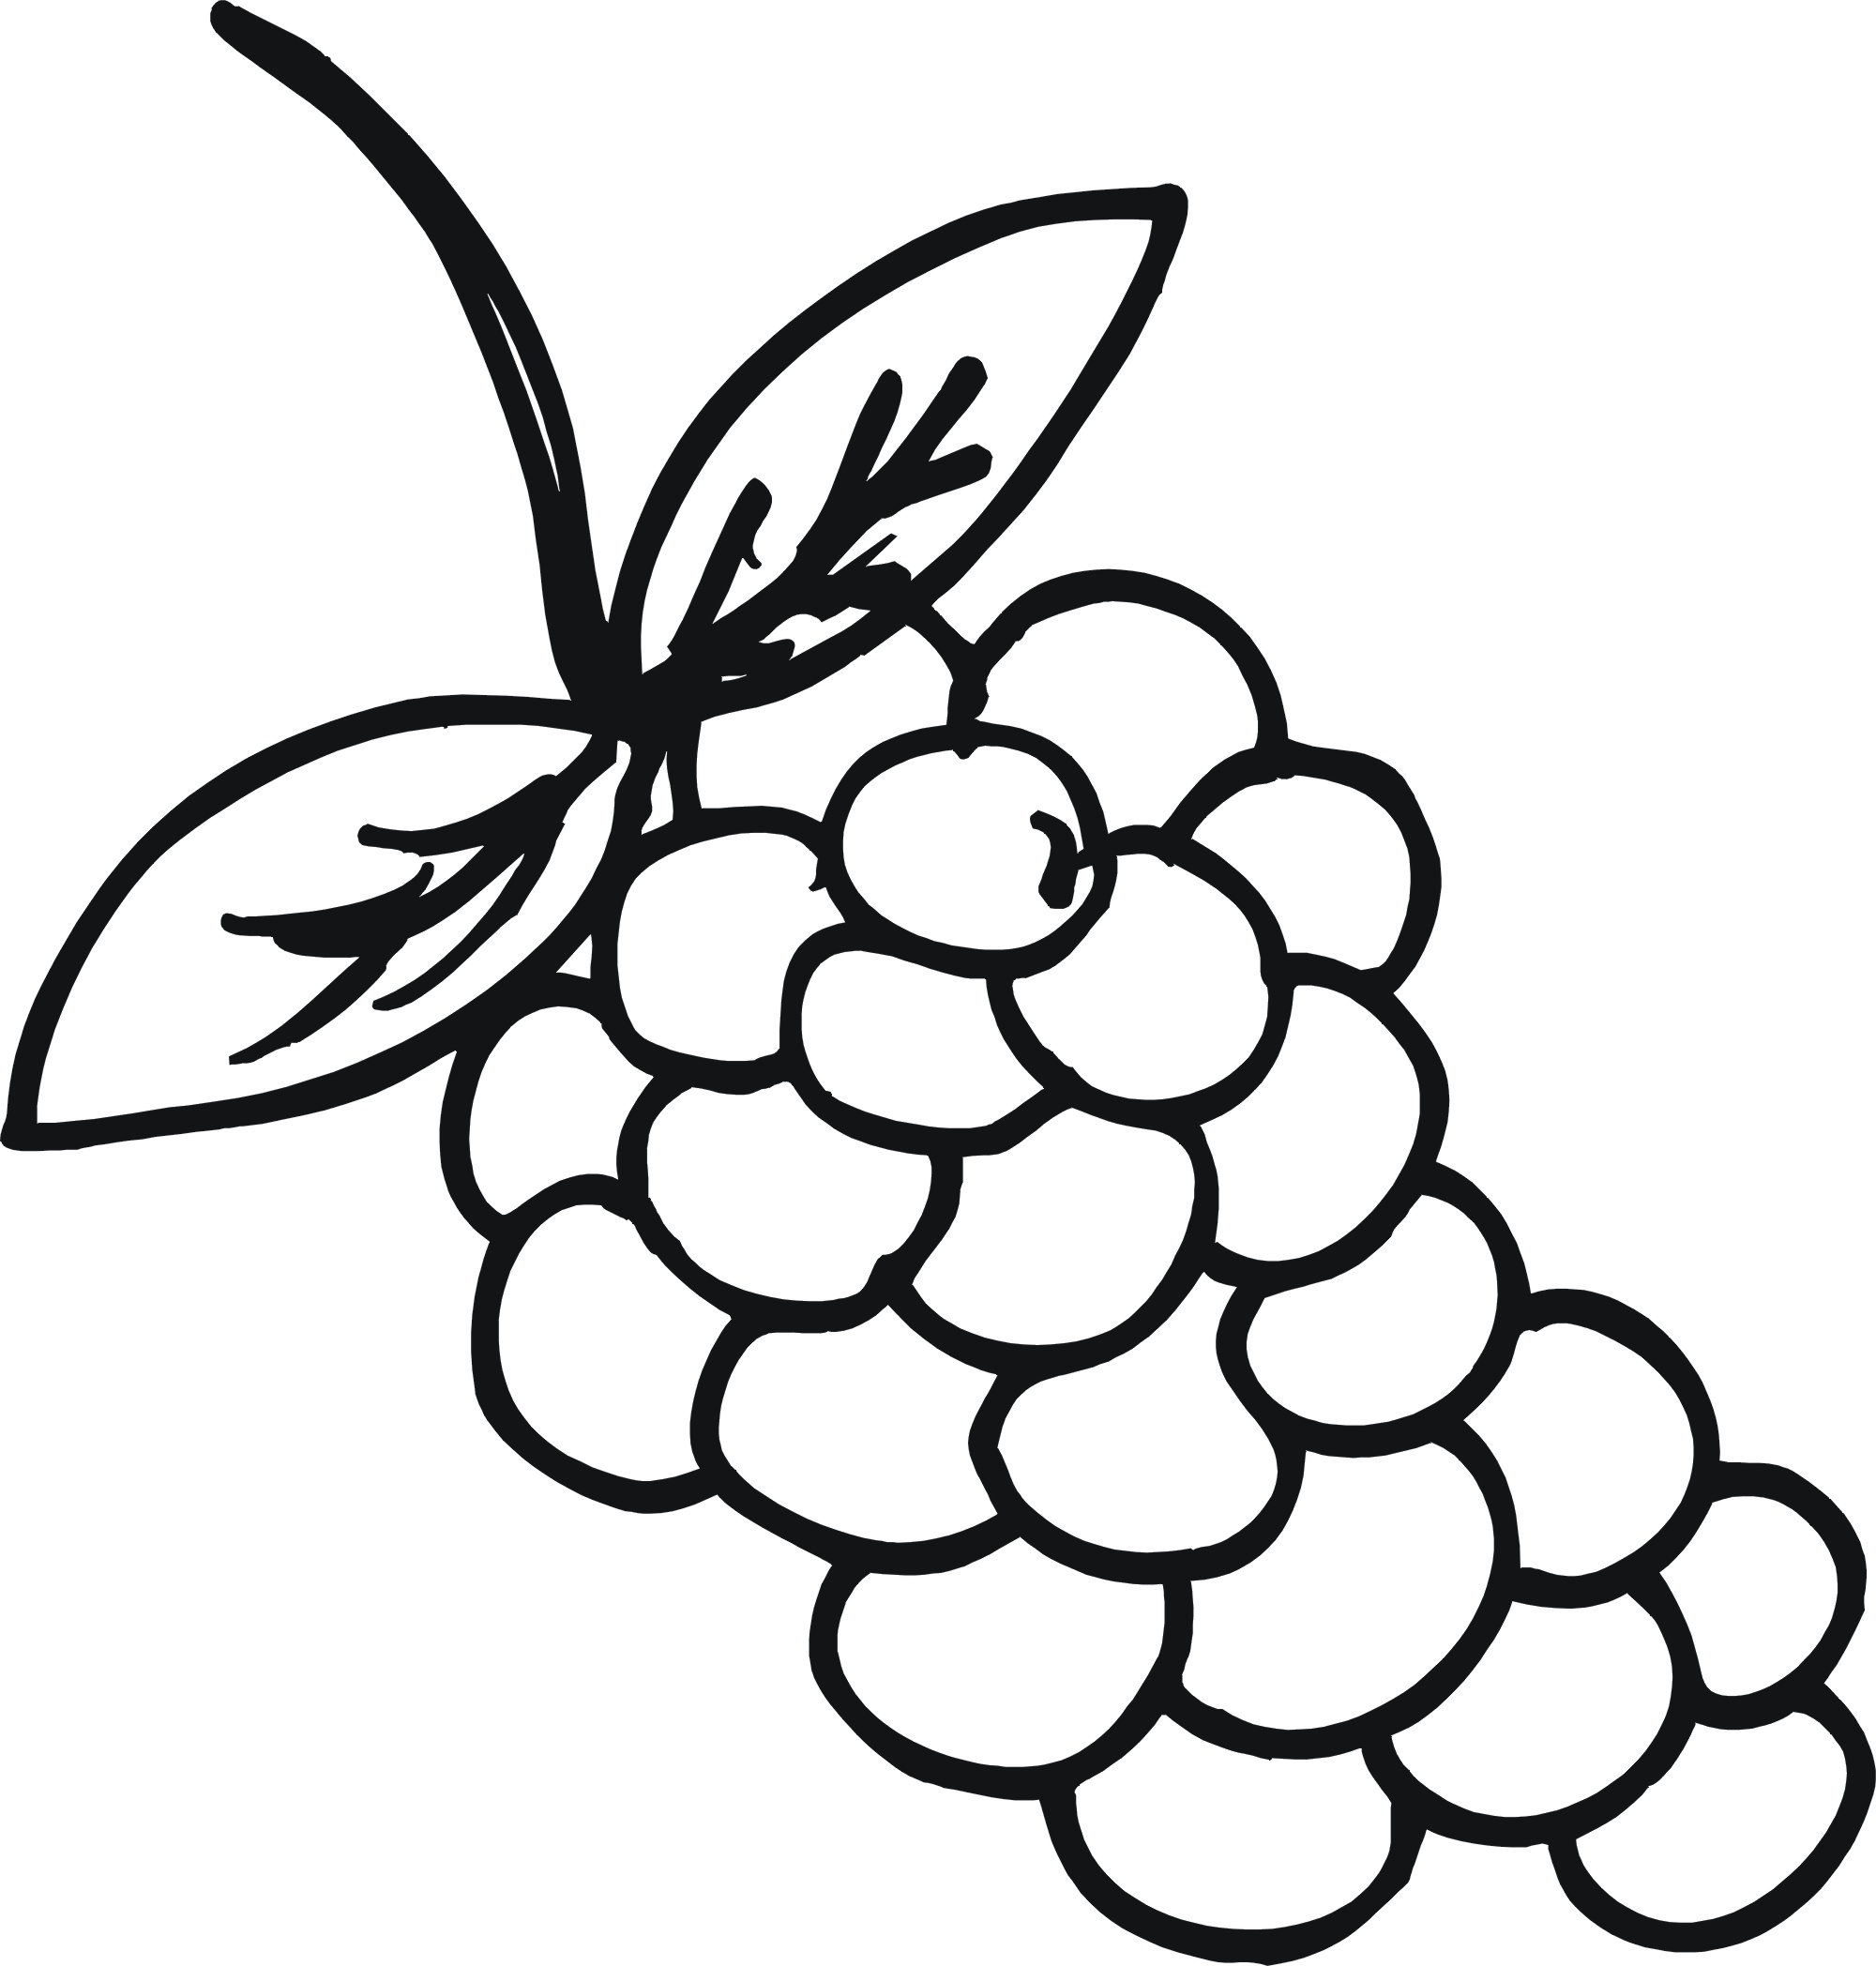 food colouring sheet realistic food coloring pages at getdrawings free download food colouring sheet